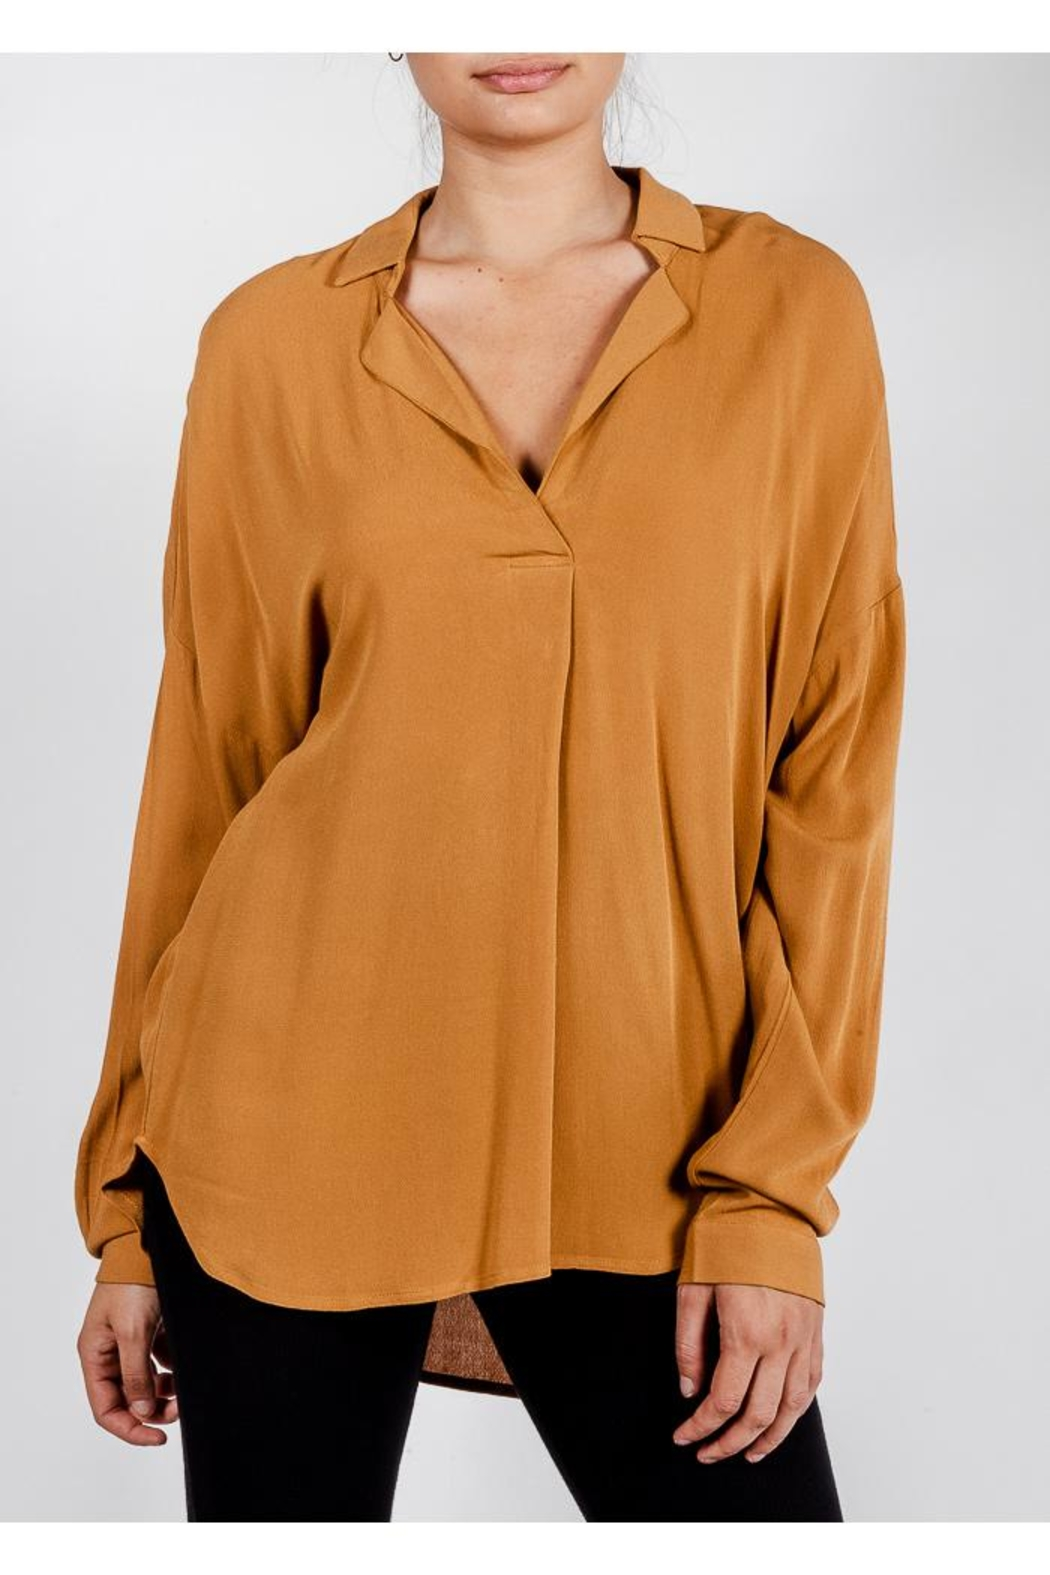 All In Favor Breezy Chic Blouse - Front Cropped Image